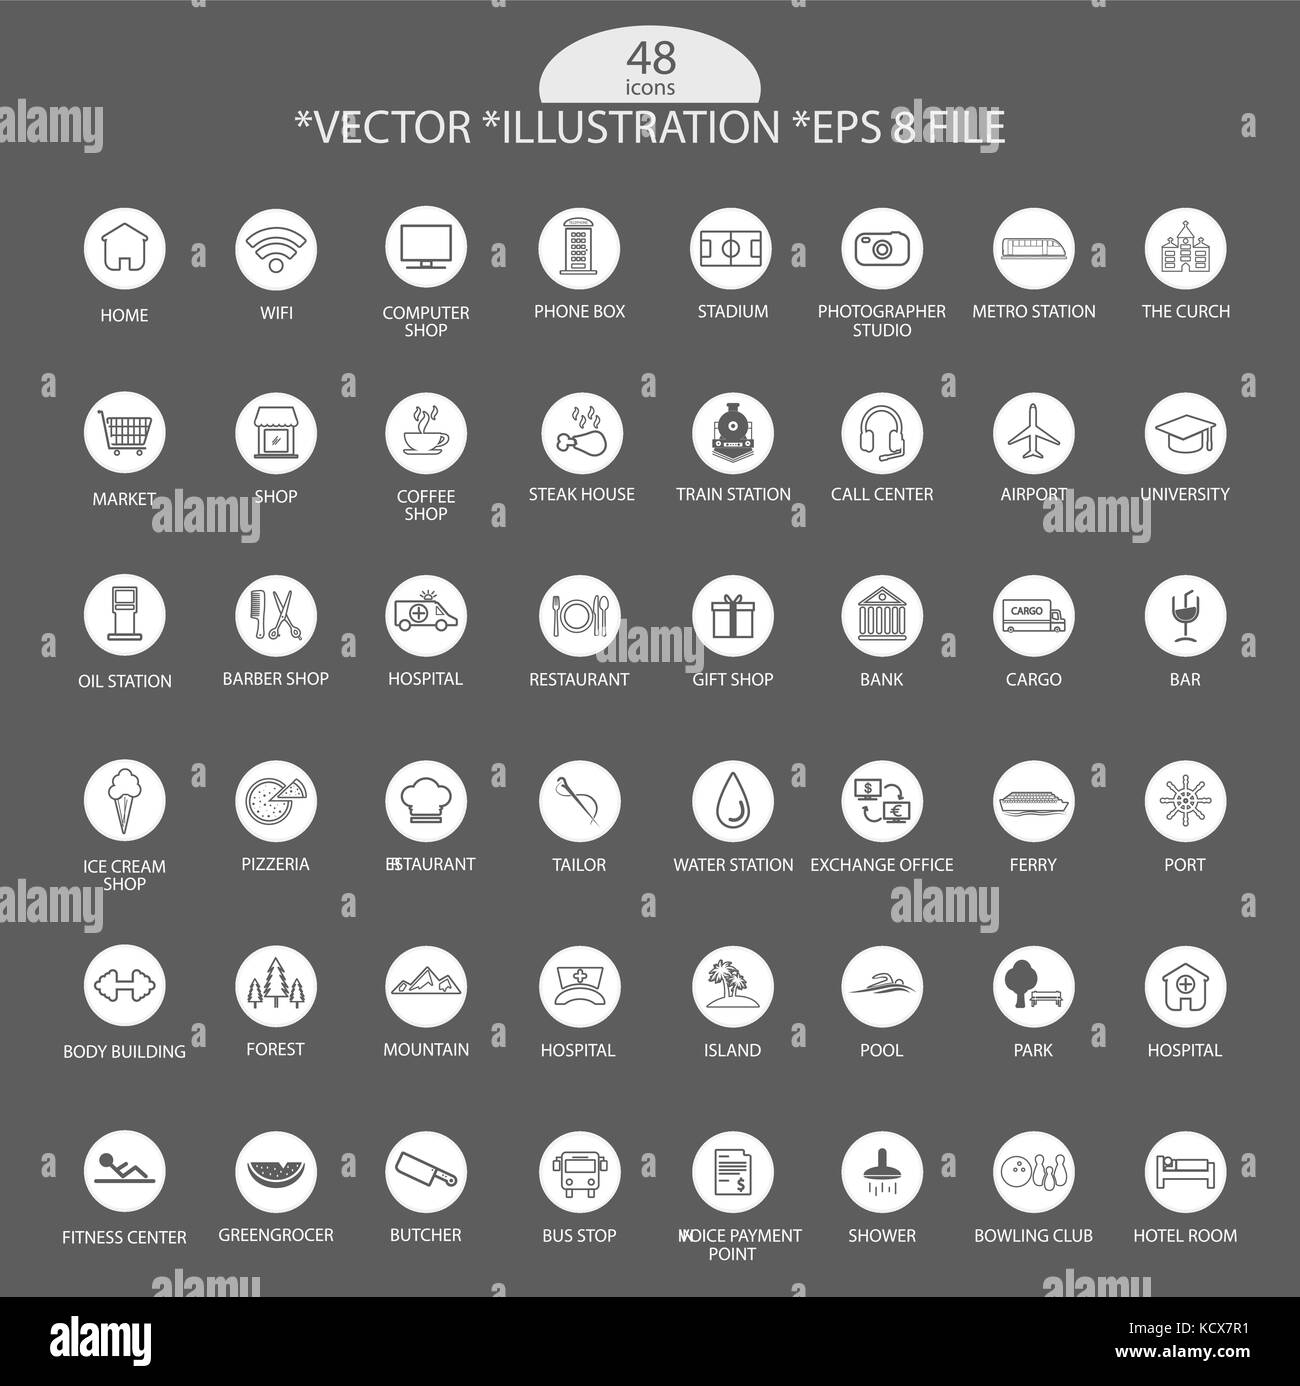 Artistic Grey Icon Set, Vector, Illustration, Eps File - Stock Image